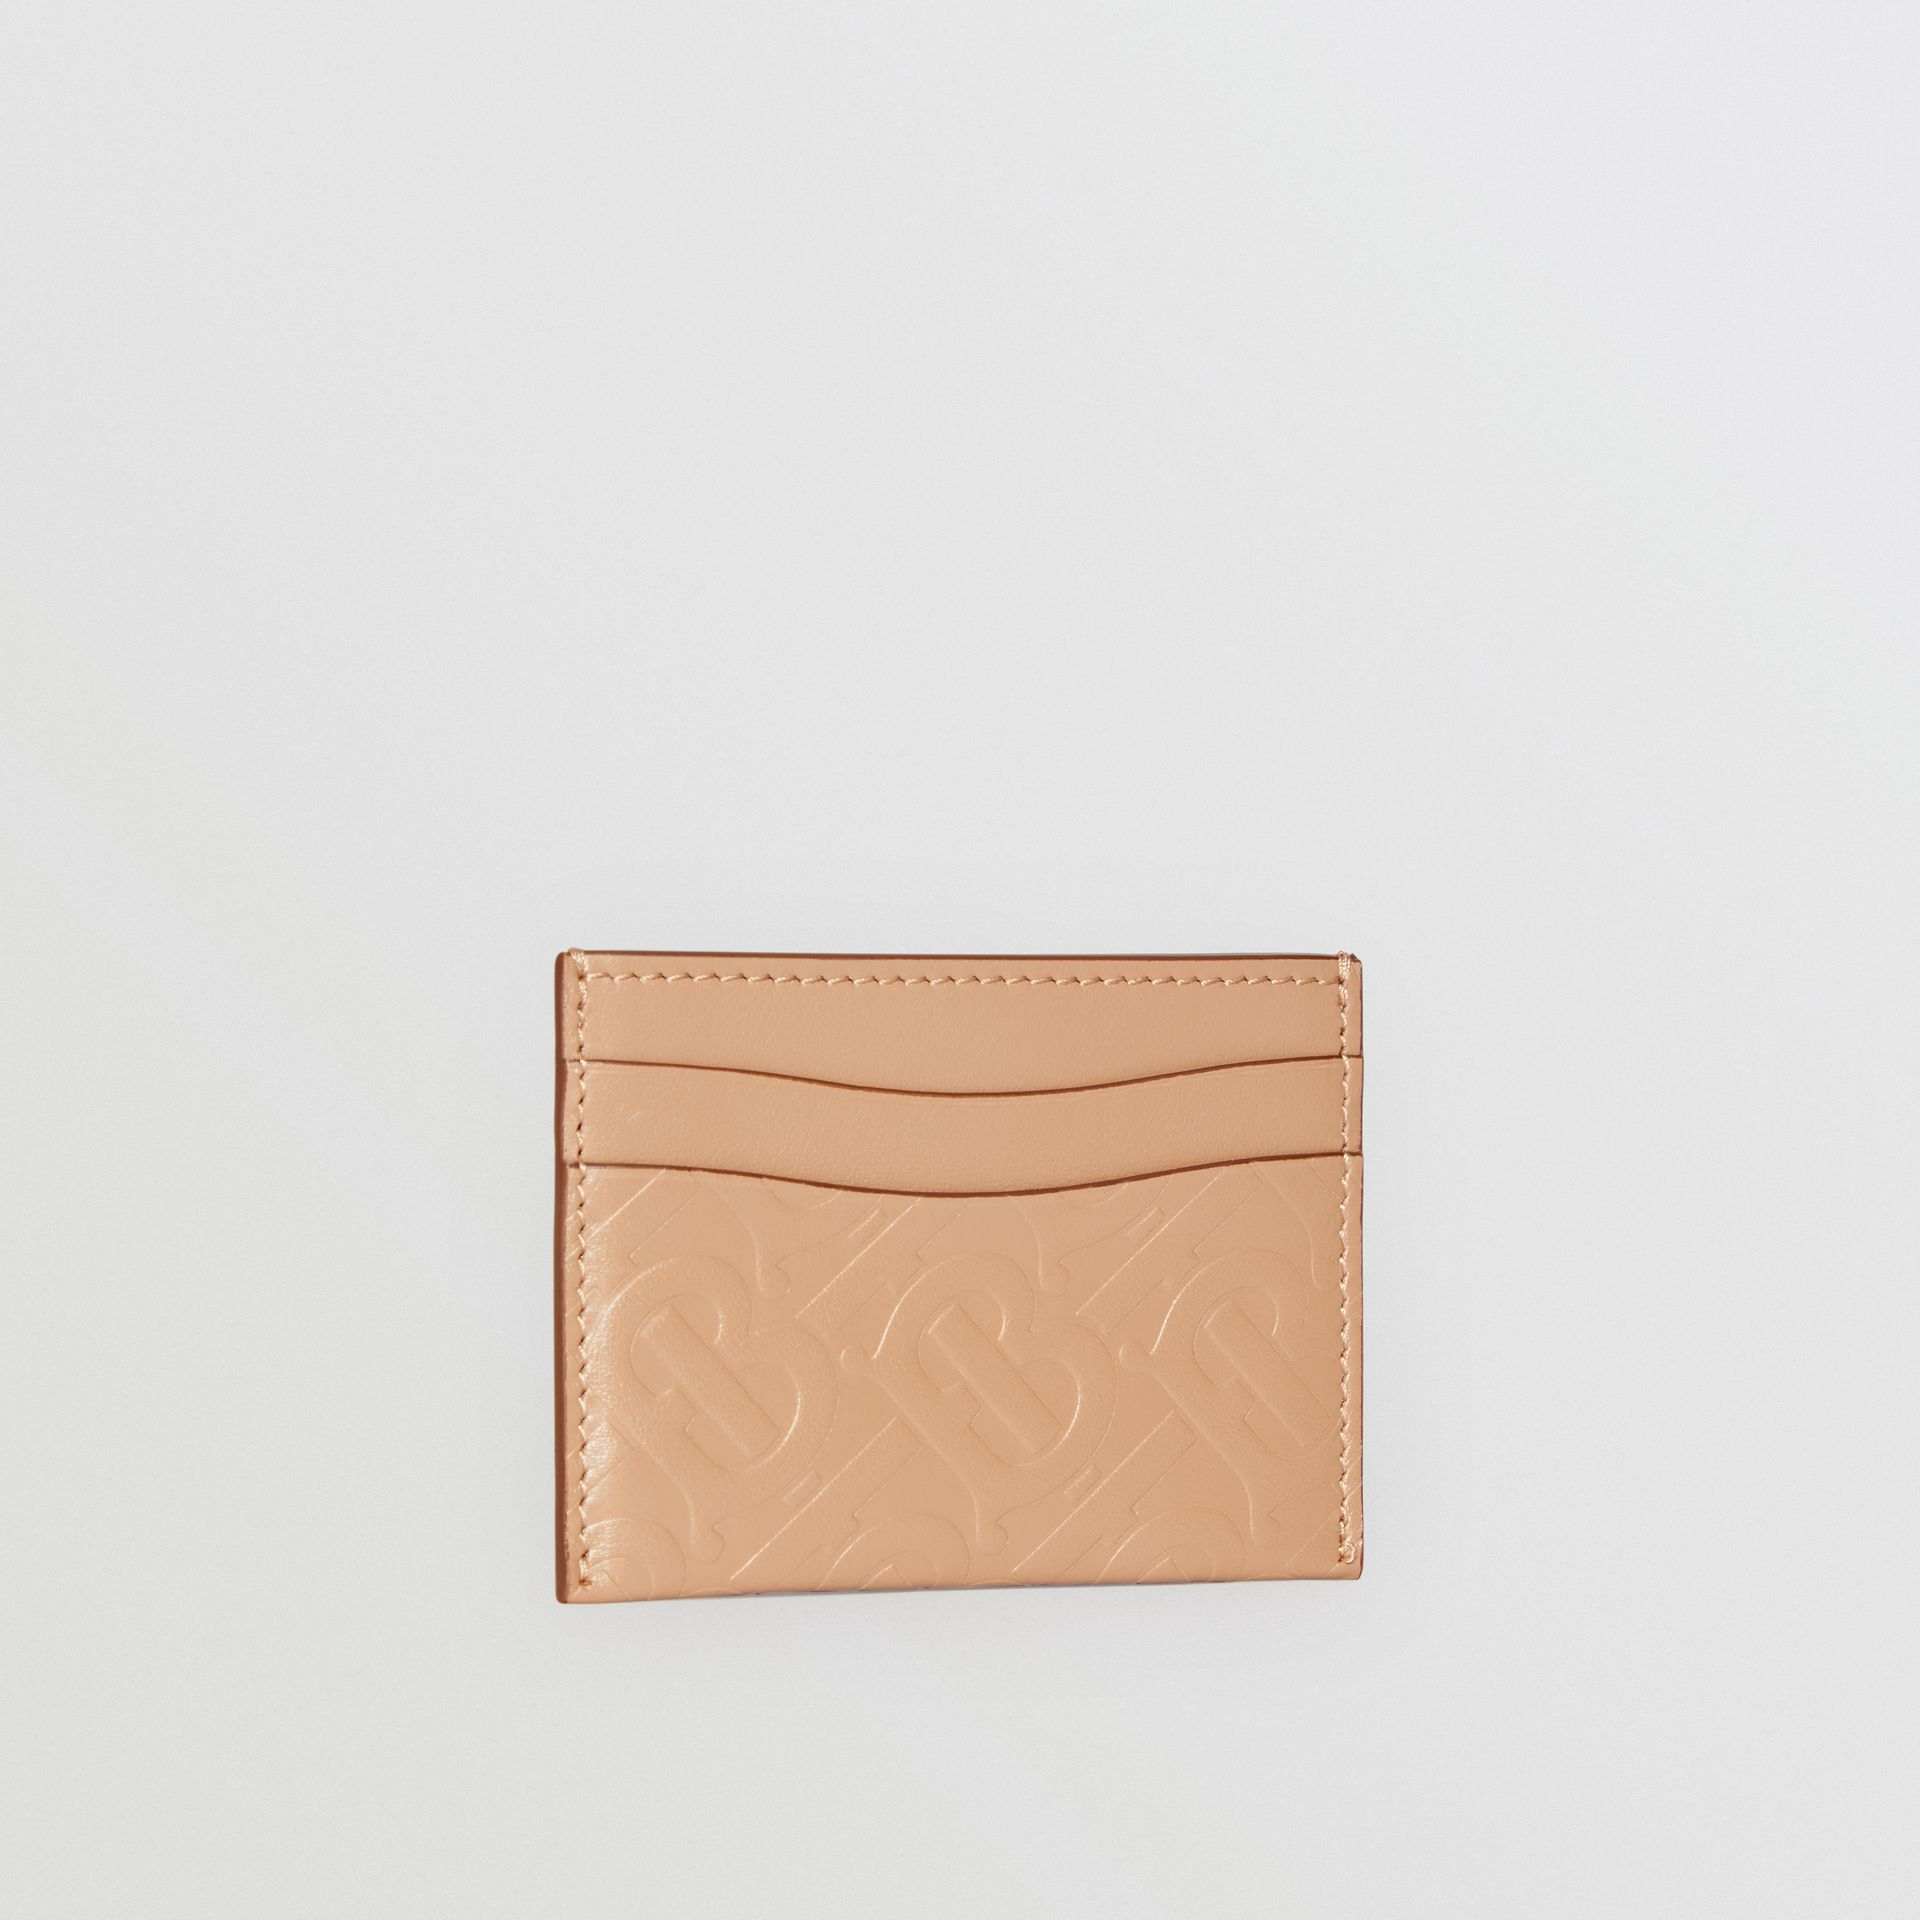 Porte-cartes en cuir Monogram (Camel Clair) - Femme | Burberry - photo de la galerie 3